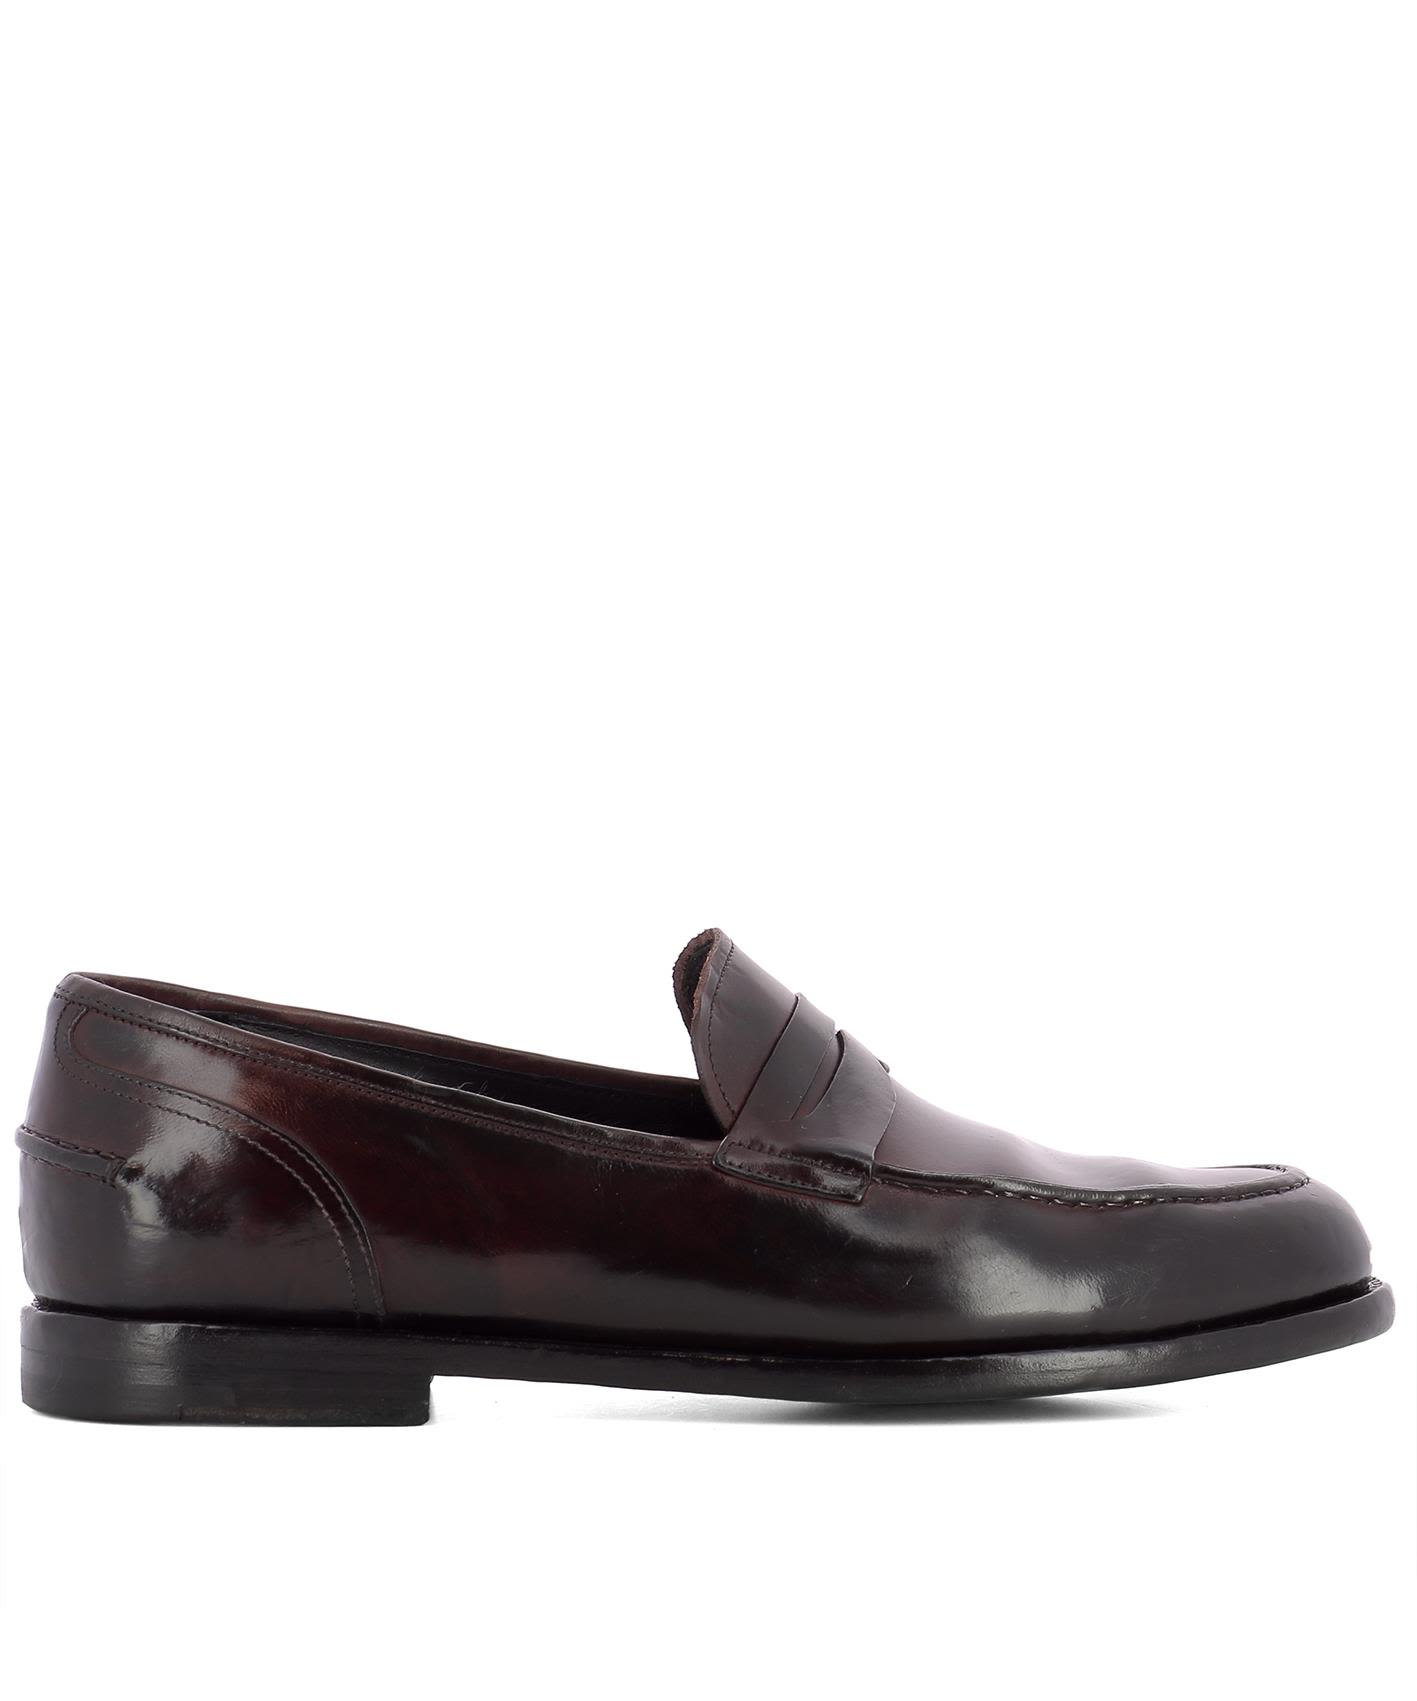 Bordeaux Leather Loafers